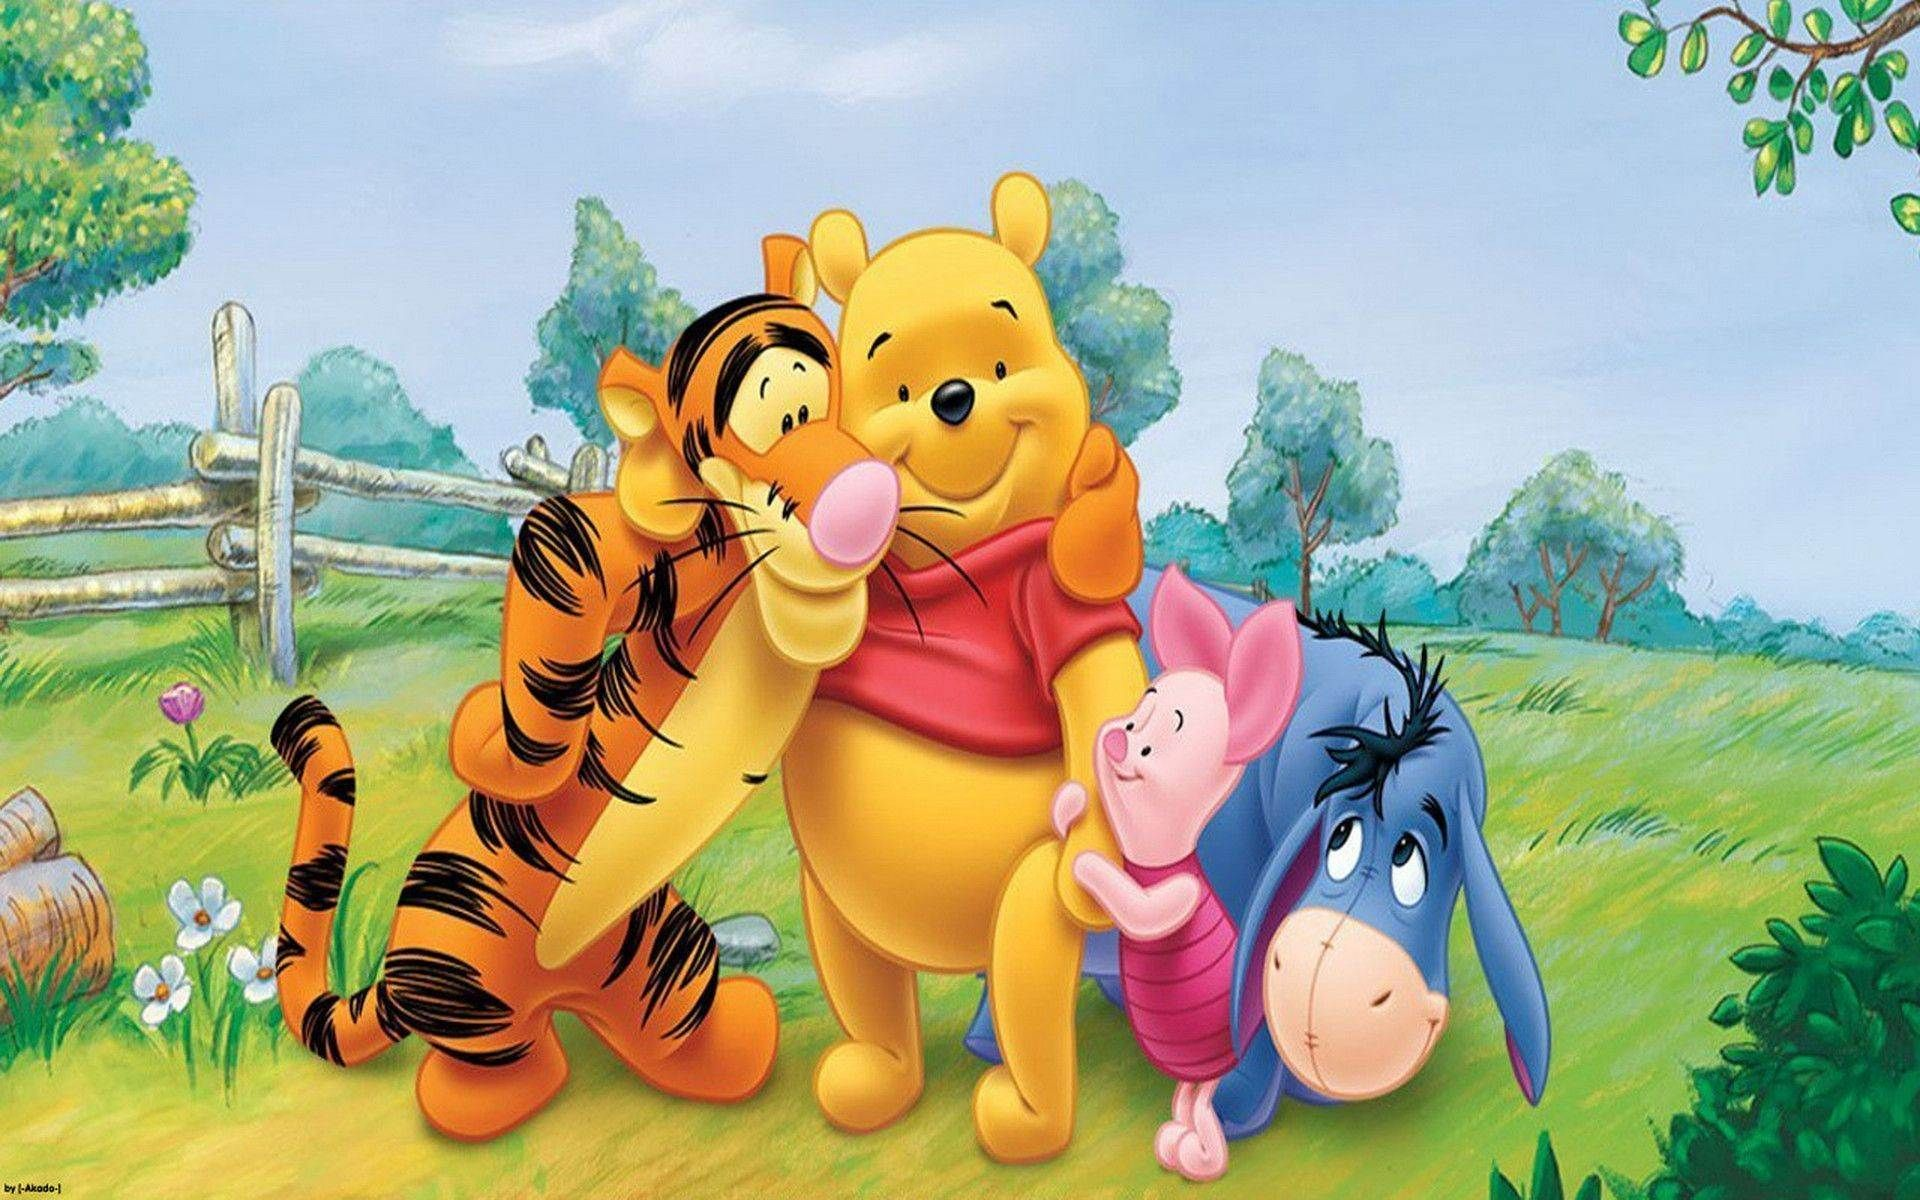 Winnie The Pooh And Friends Wallpapers Wallpaper Disney Winnie The